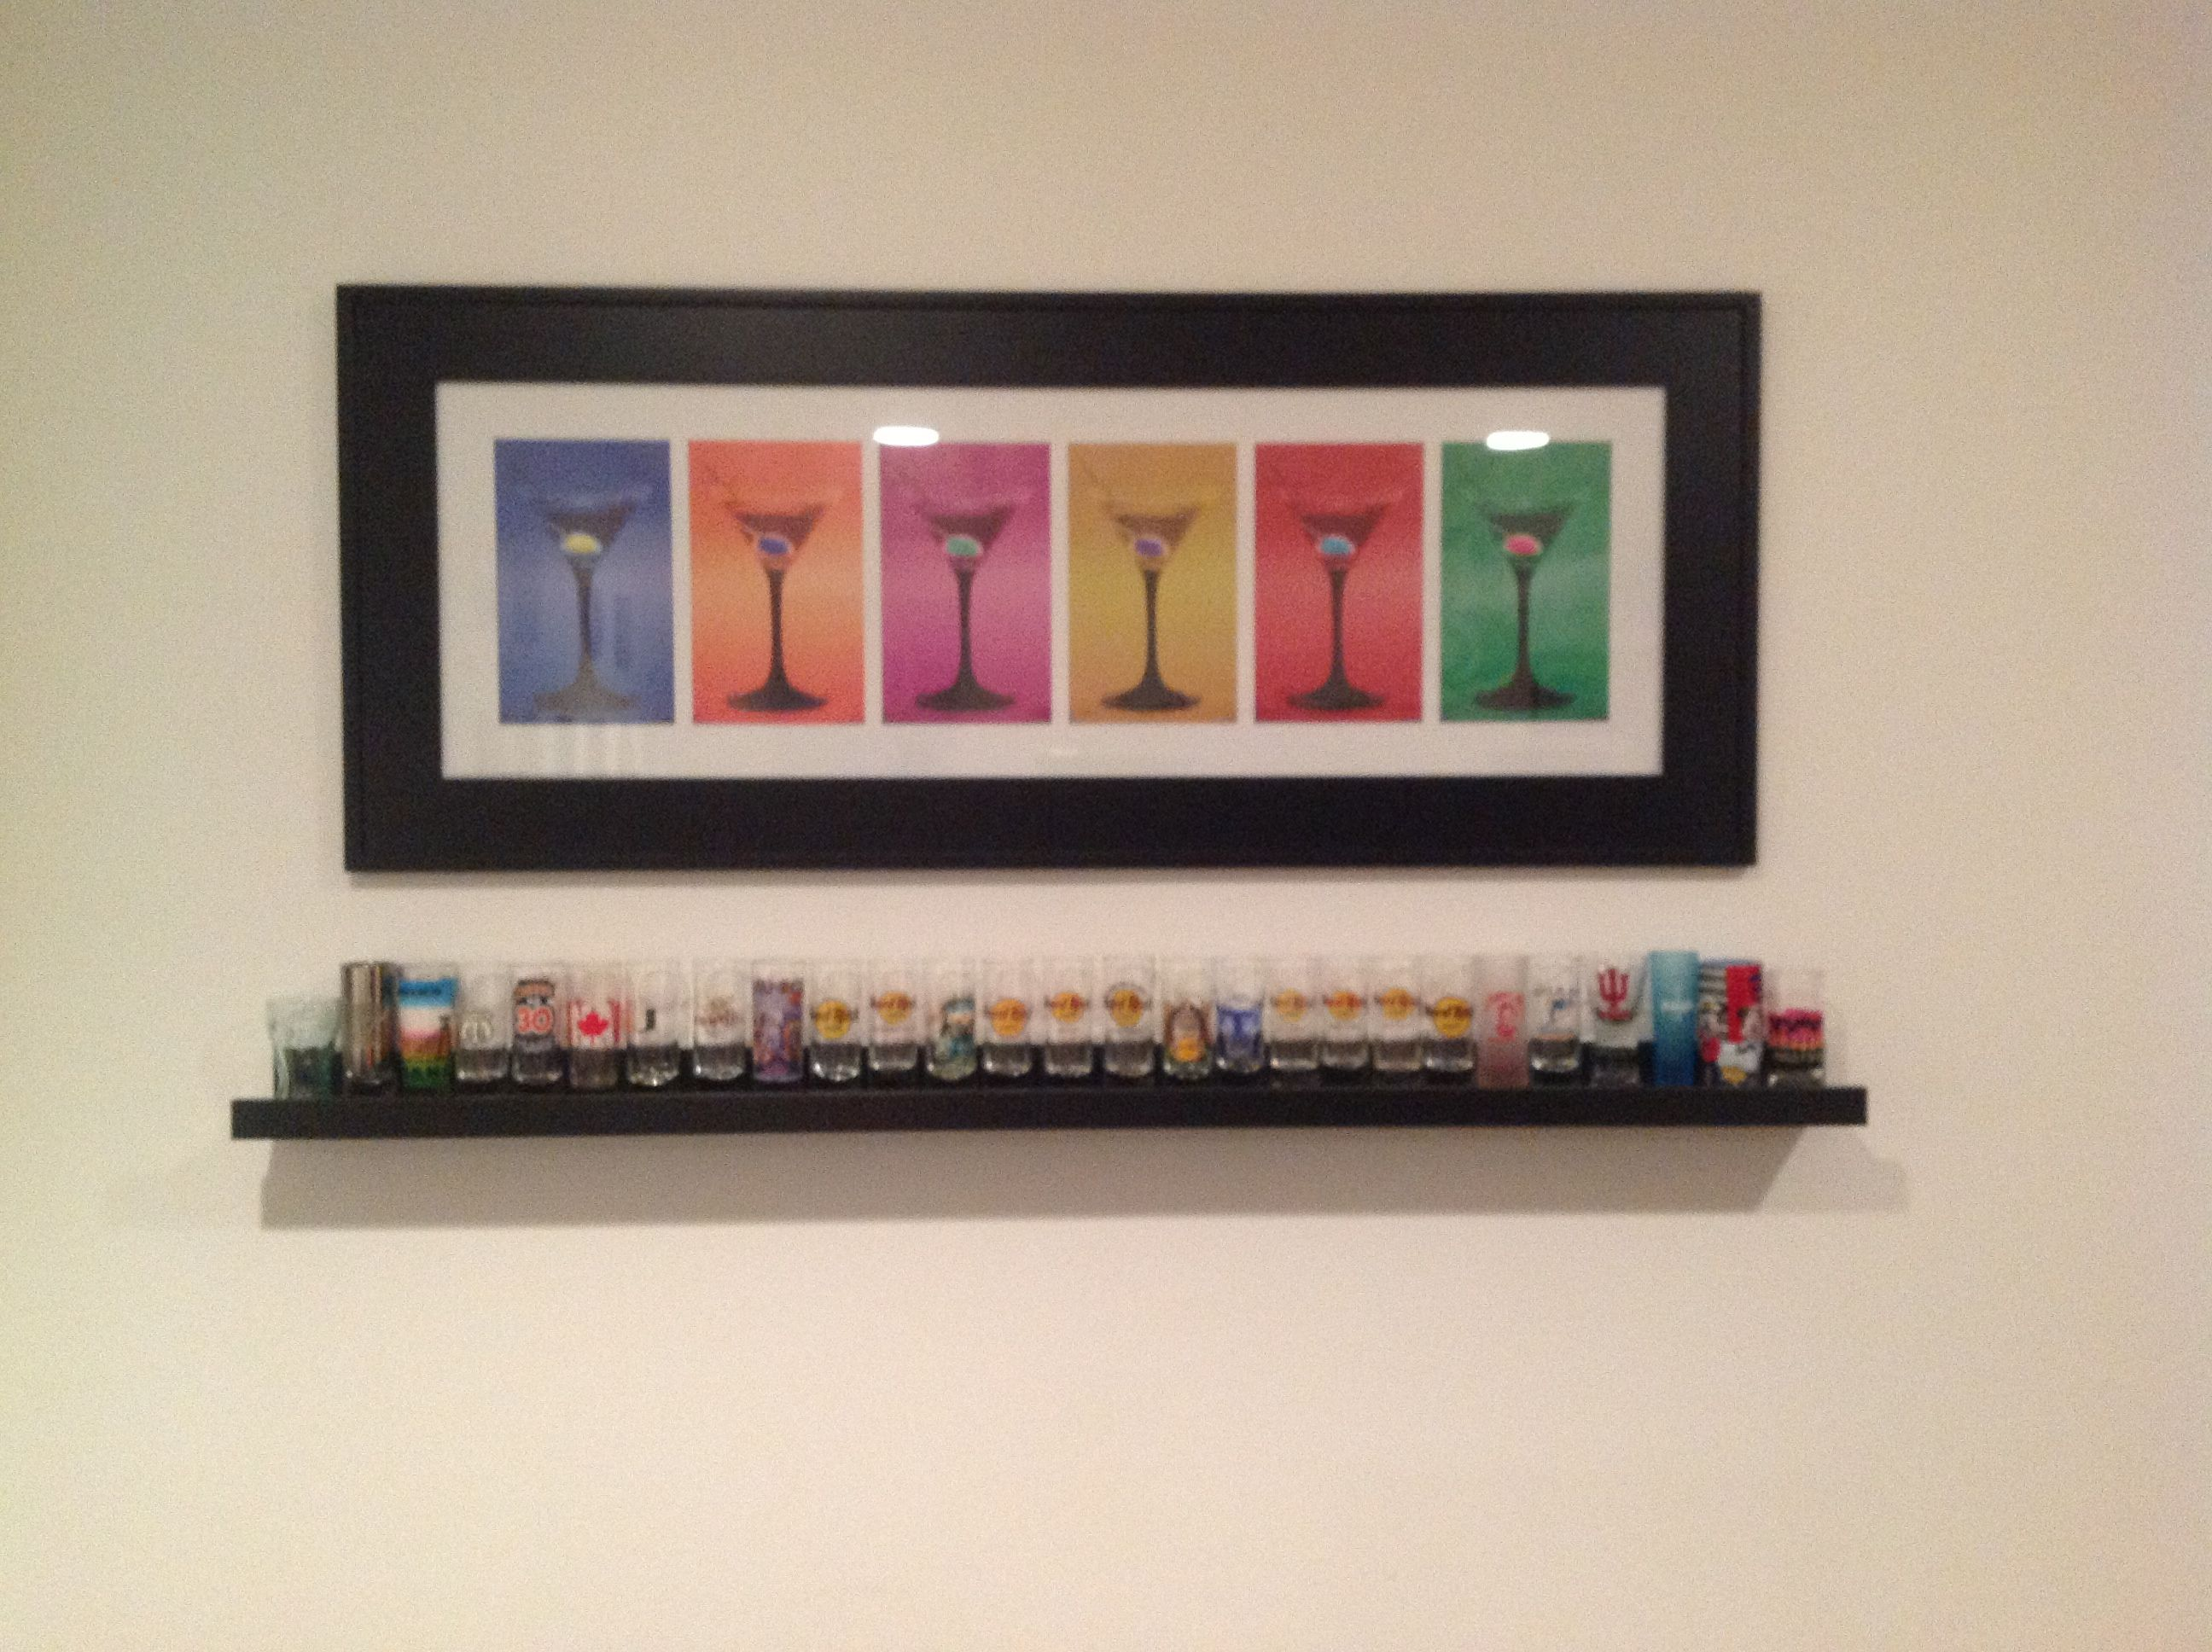 Shelves Found In Ikea Used For Displaying Shot Glasses Crafty